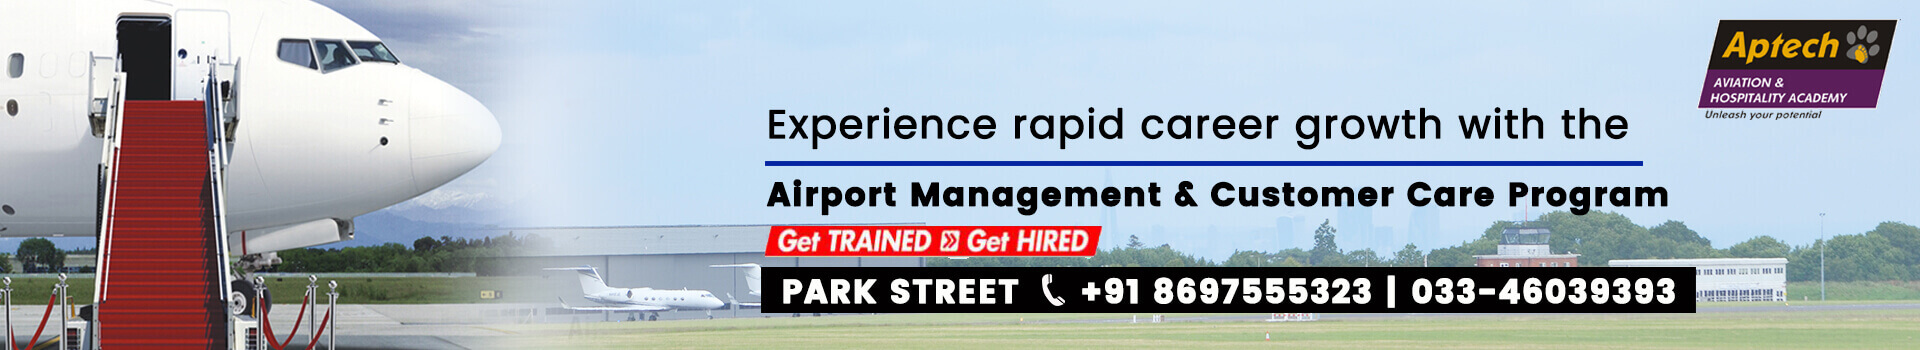 Airport Management course in kolkata